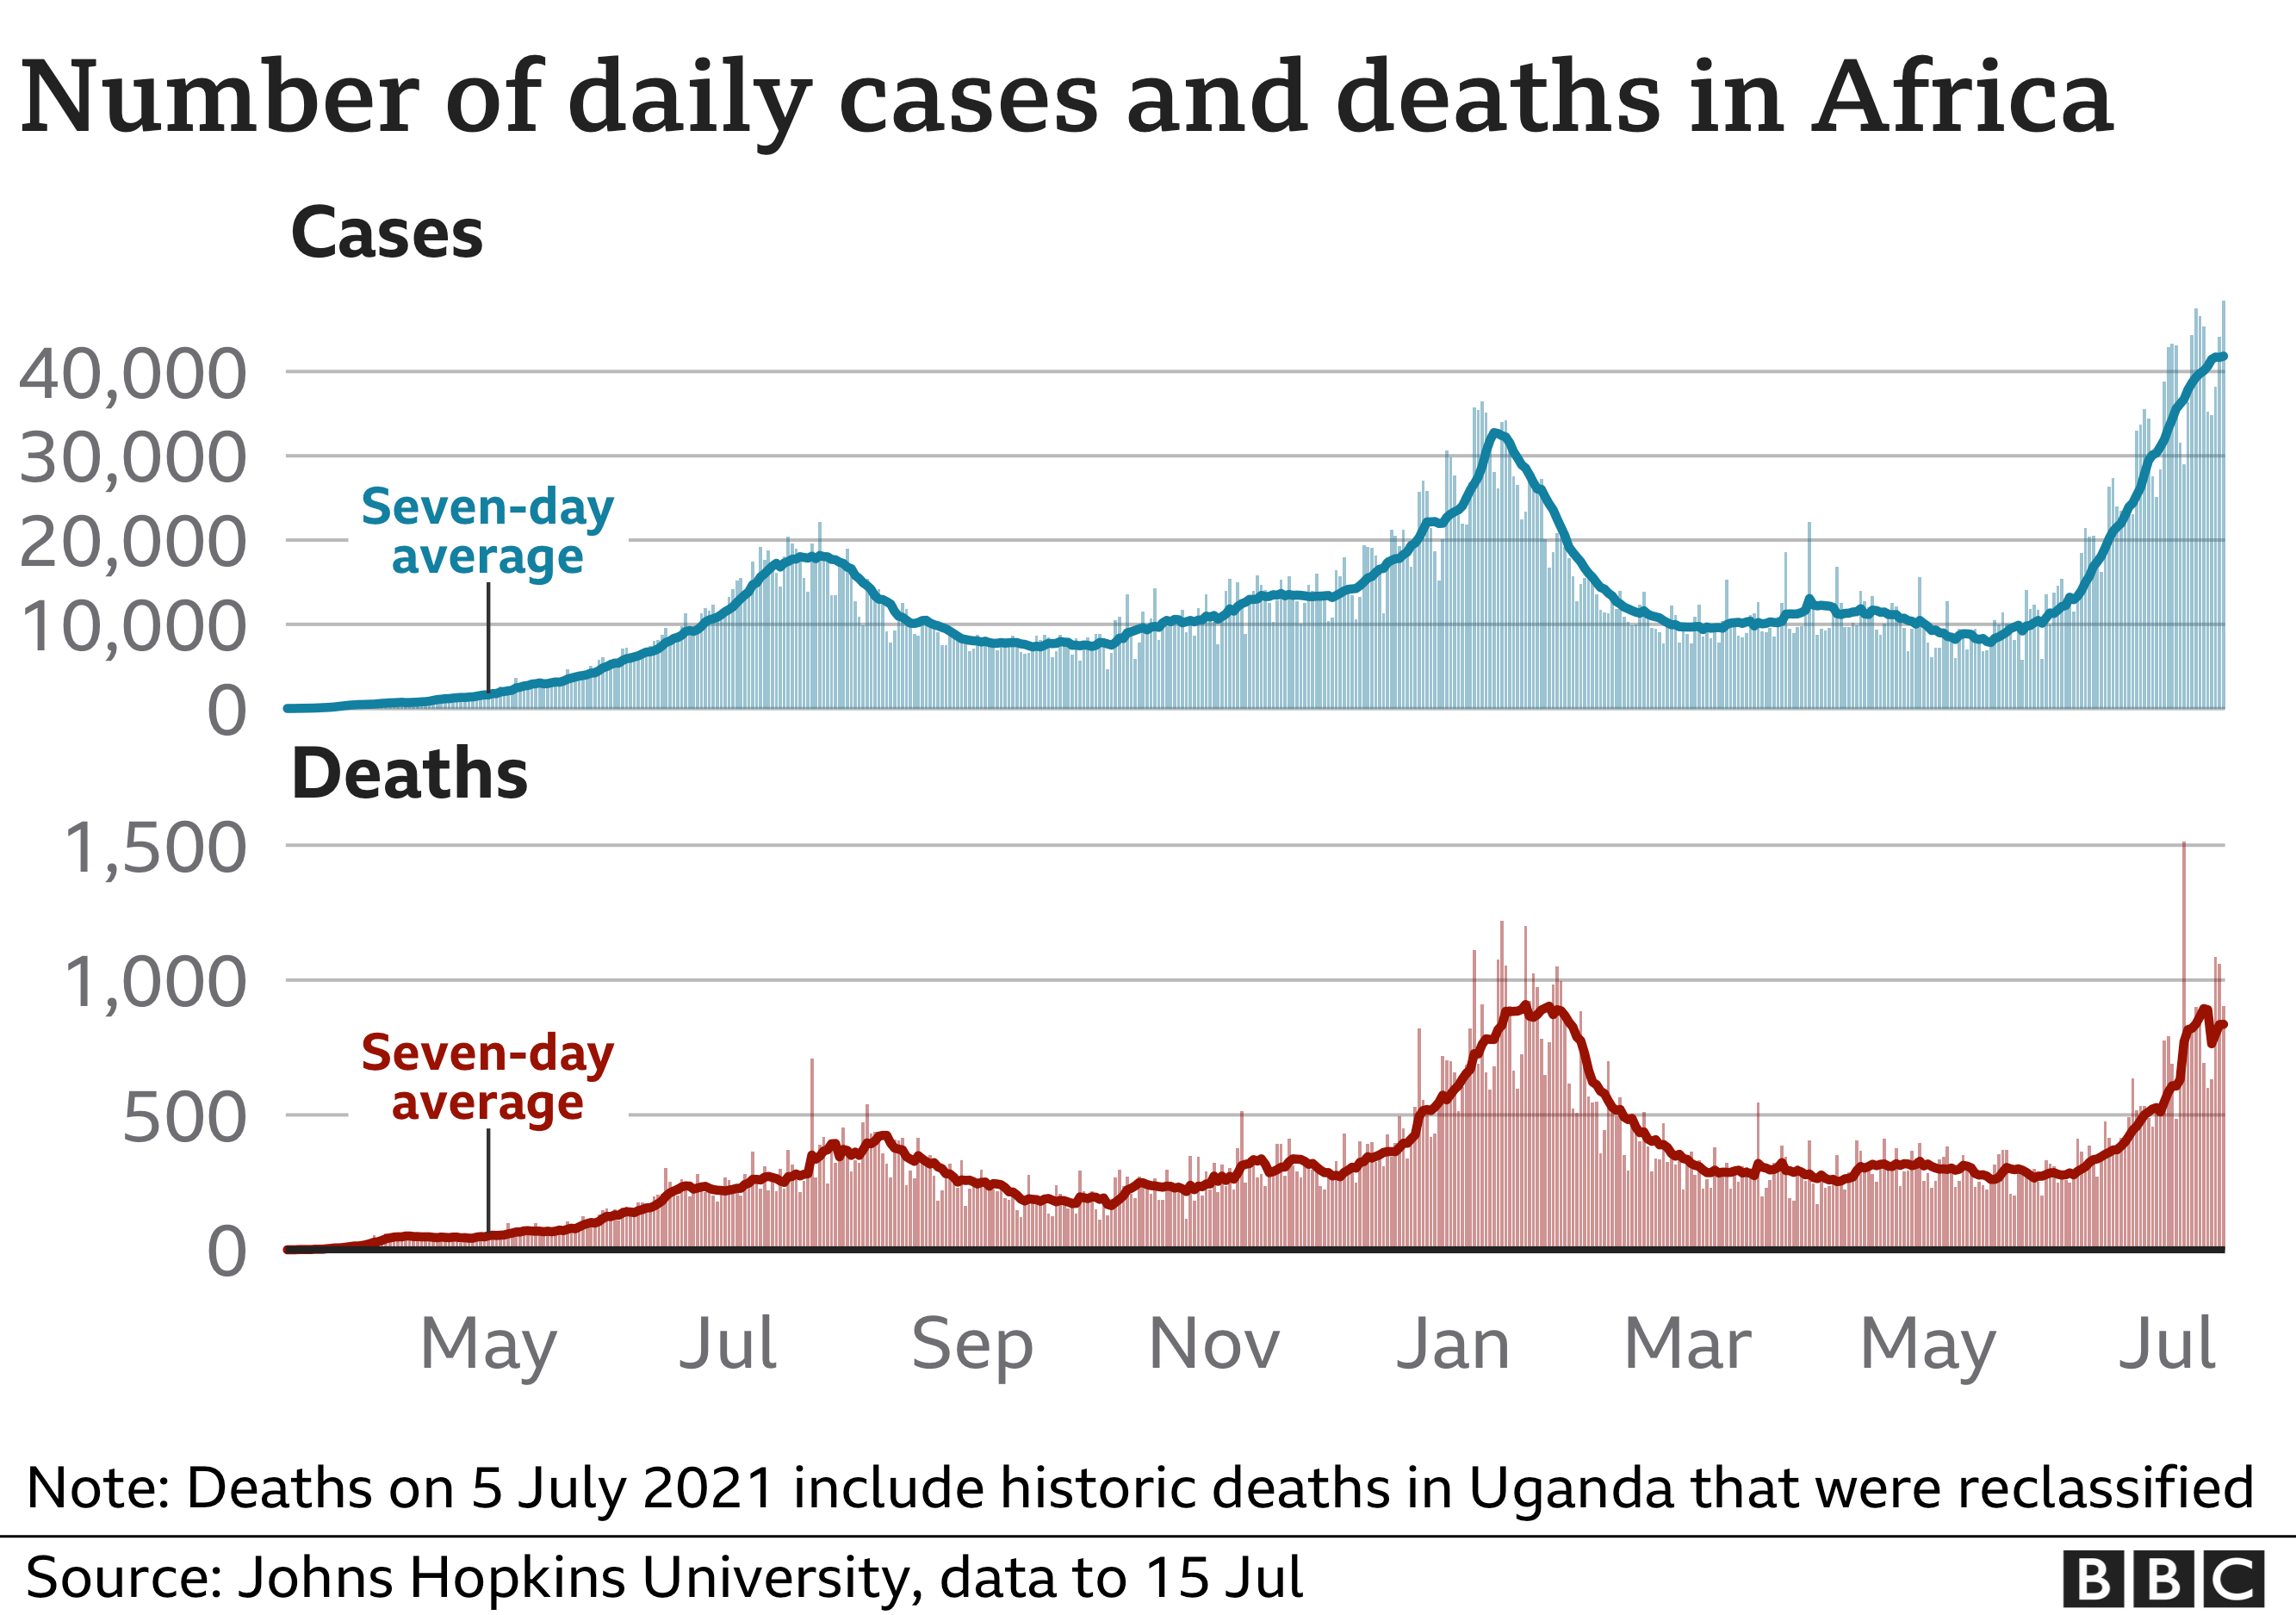 Chart showing rising cases in Africa over time